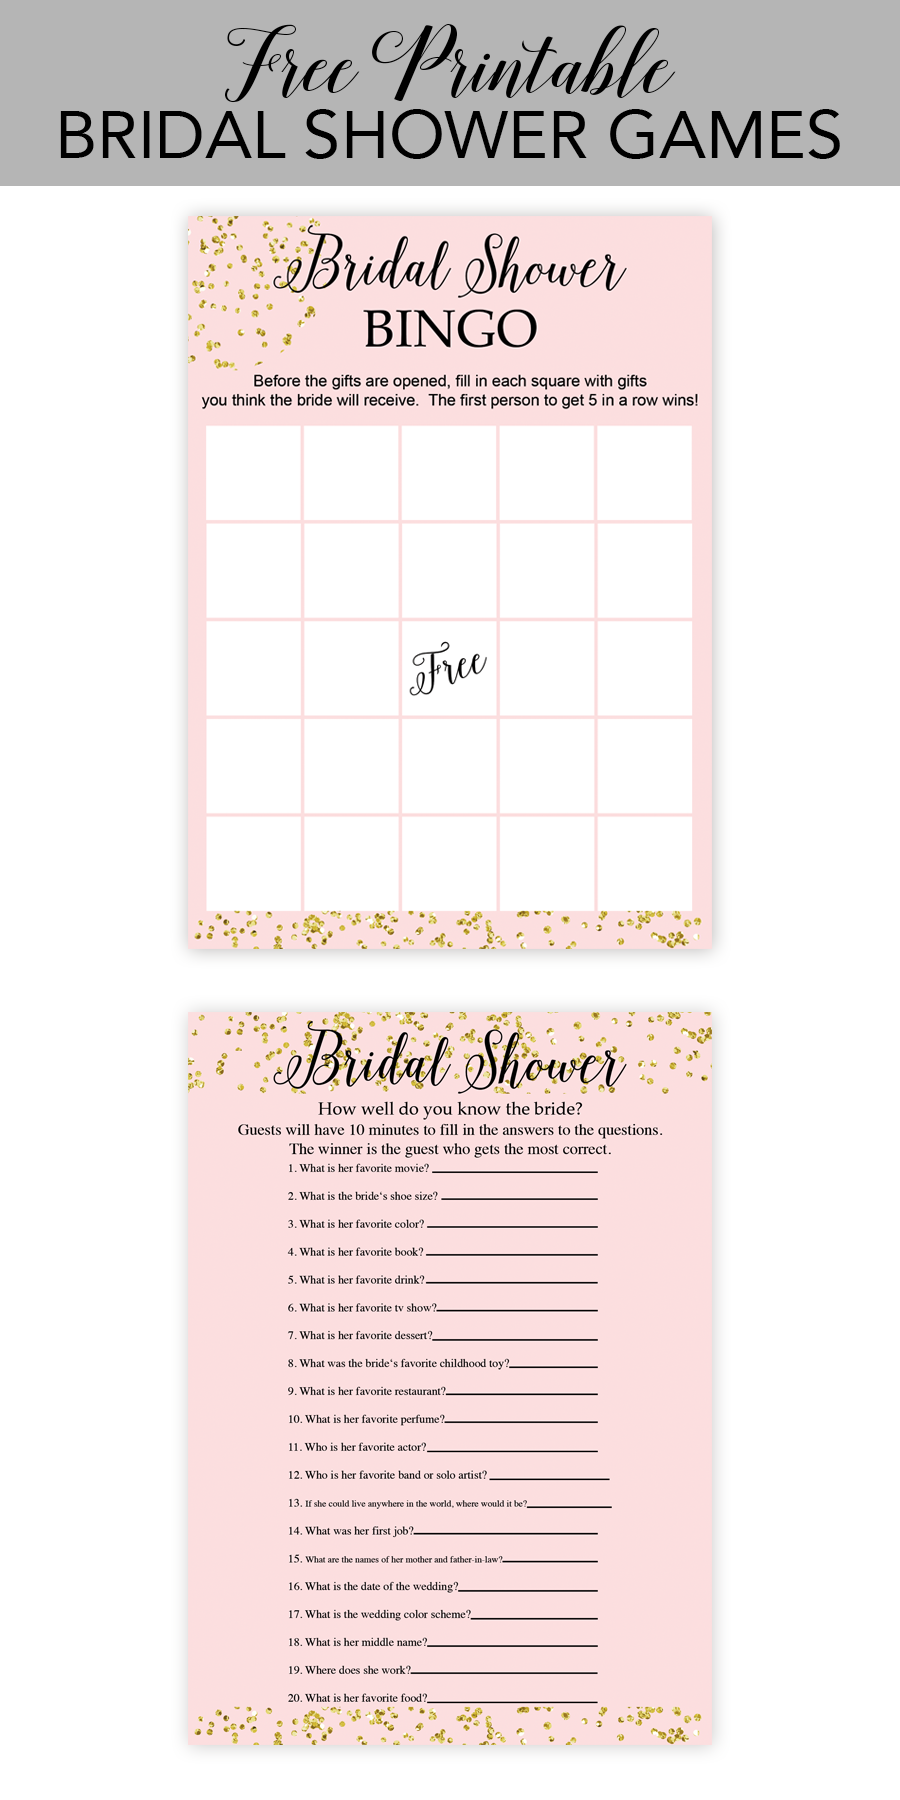 photo regarding Free Printable Bridal Shower Games How Well Do You Know the Bride known as Cost-free Printable Bridal Shower Video games - Chicfetti